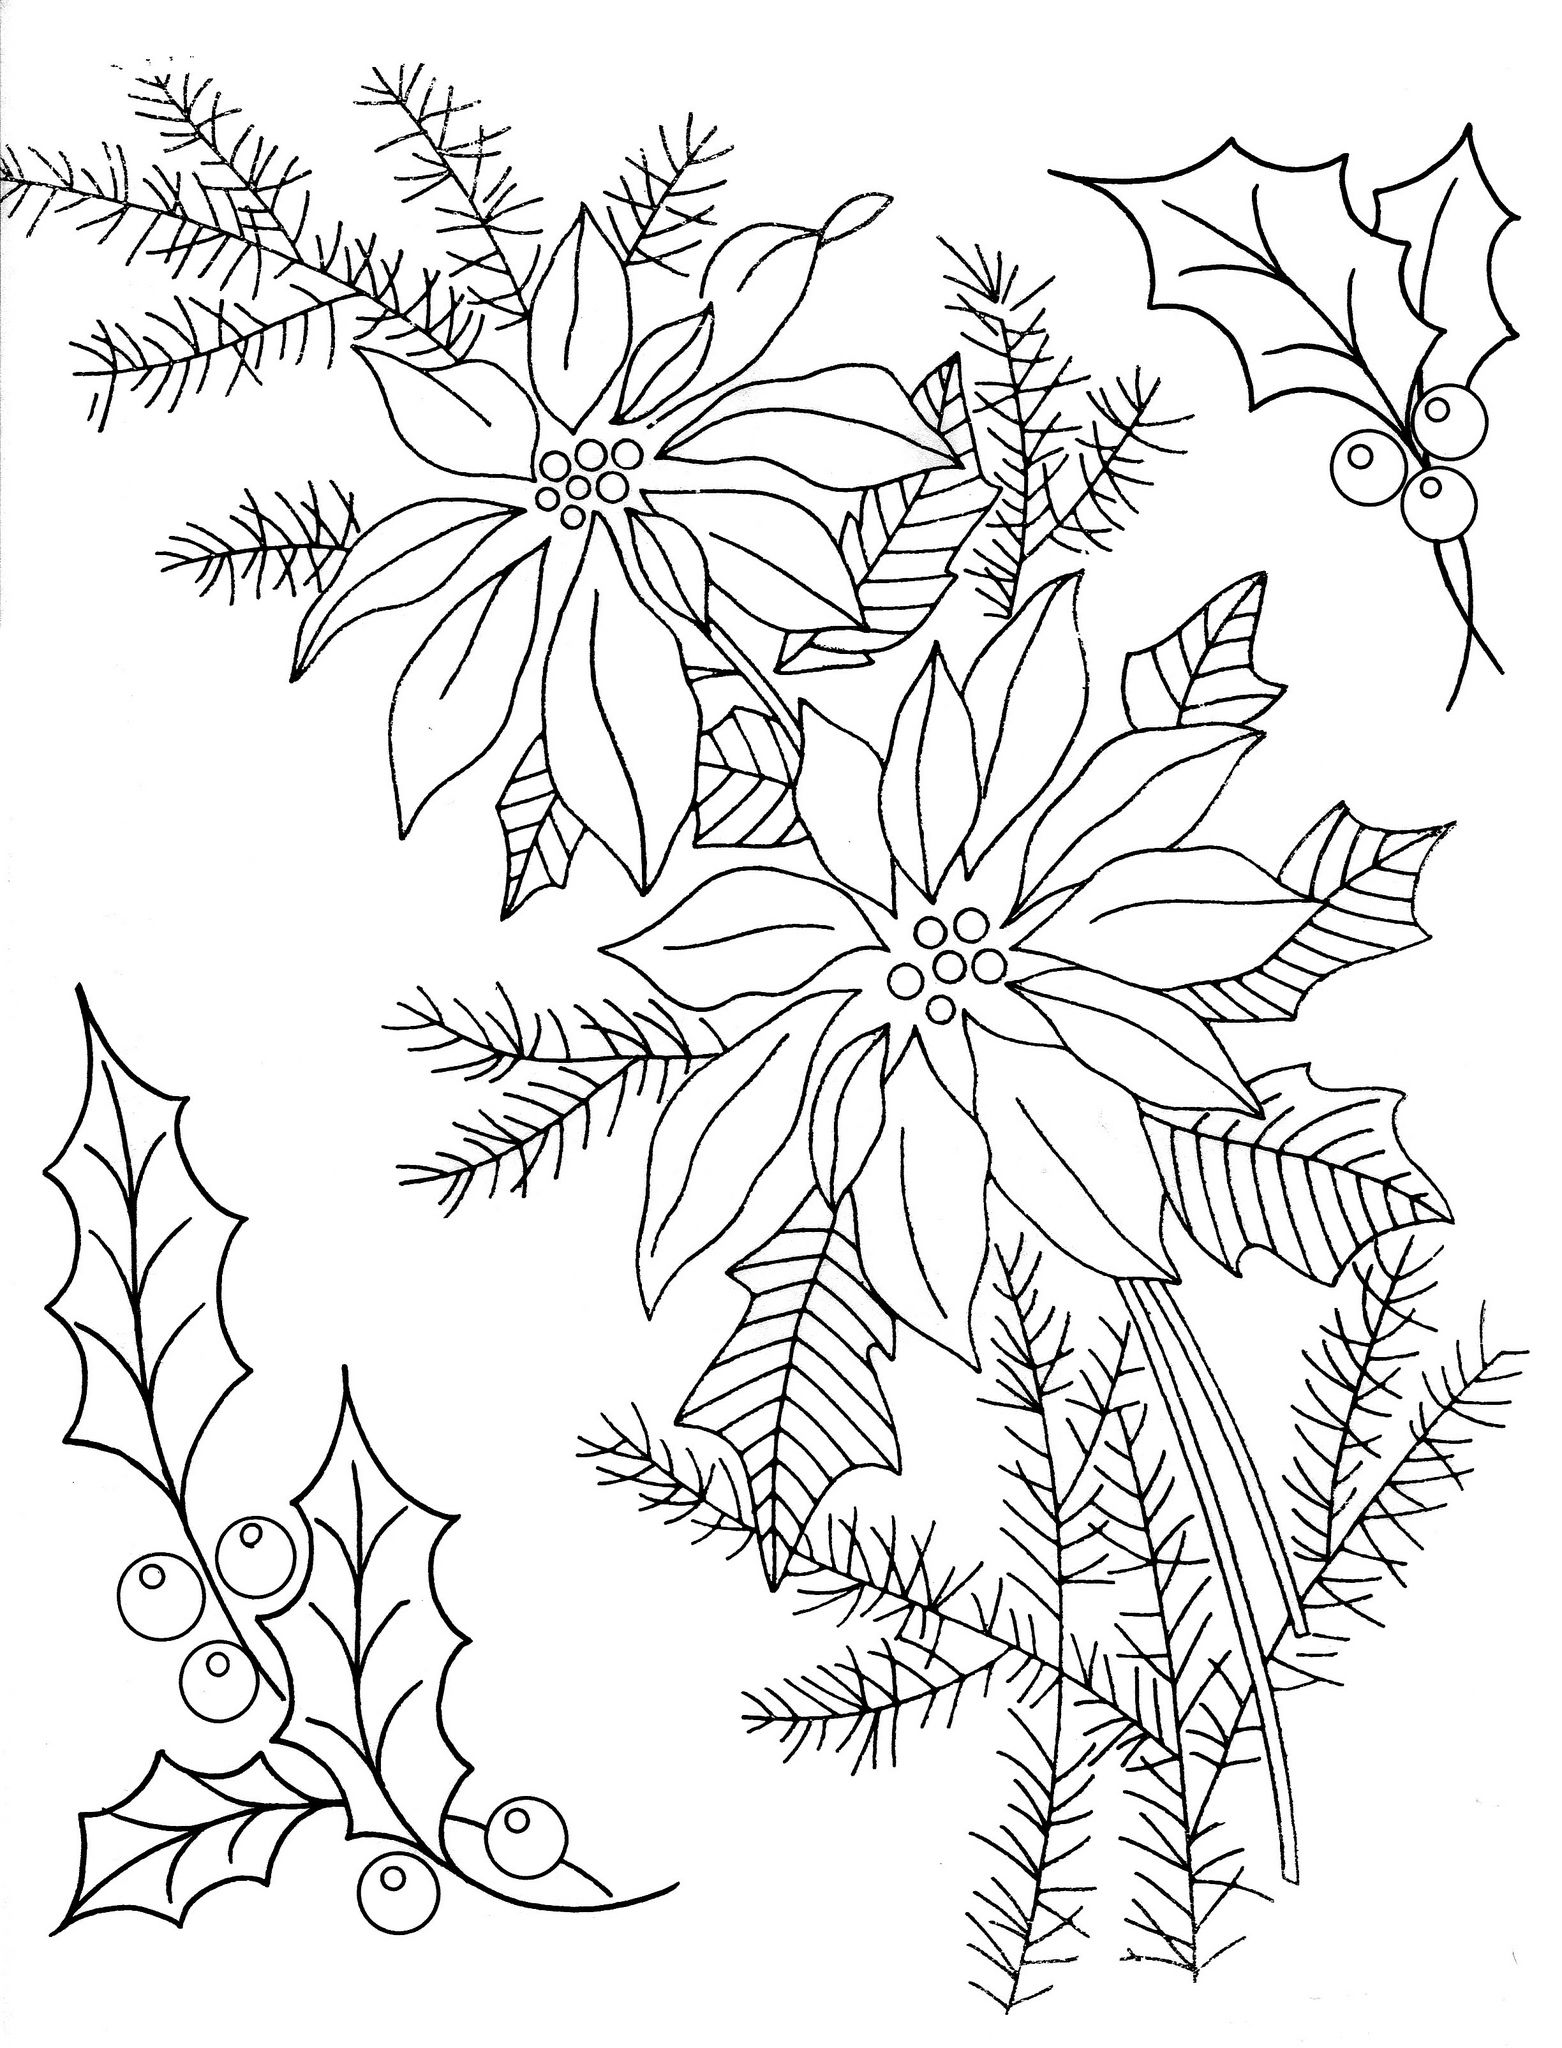 Holly poinsettia embroidery patterns things i love 10 holly poinsettia embroidery patterns bankloansurffo Choice Image